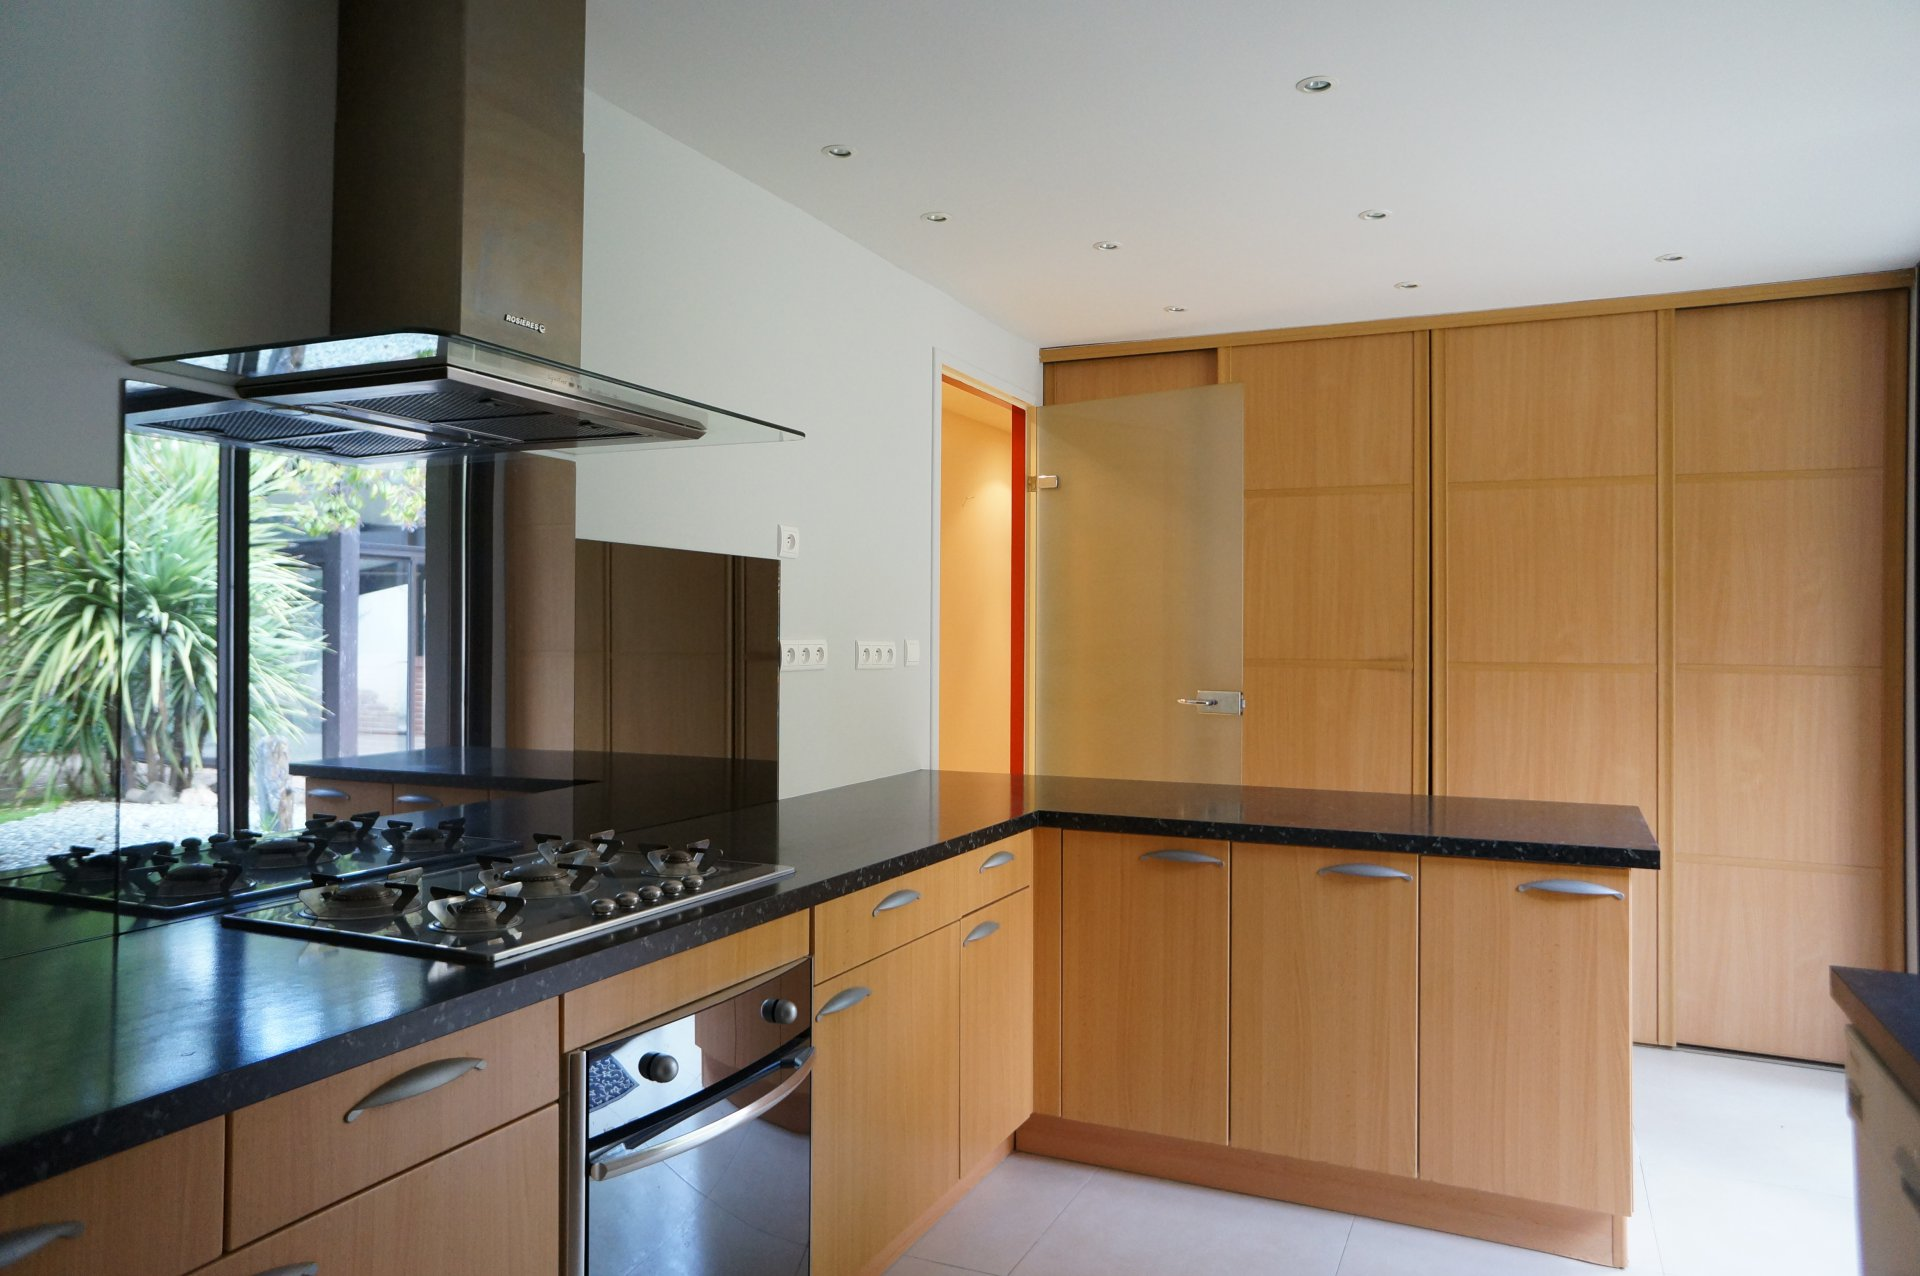 Kitchen, stainless steel, natural light, fireplace, tile